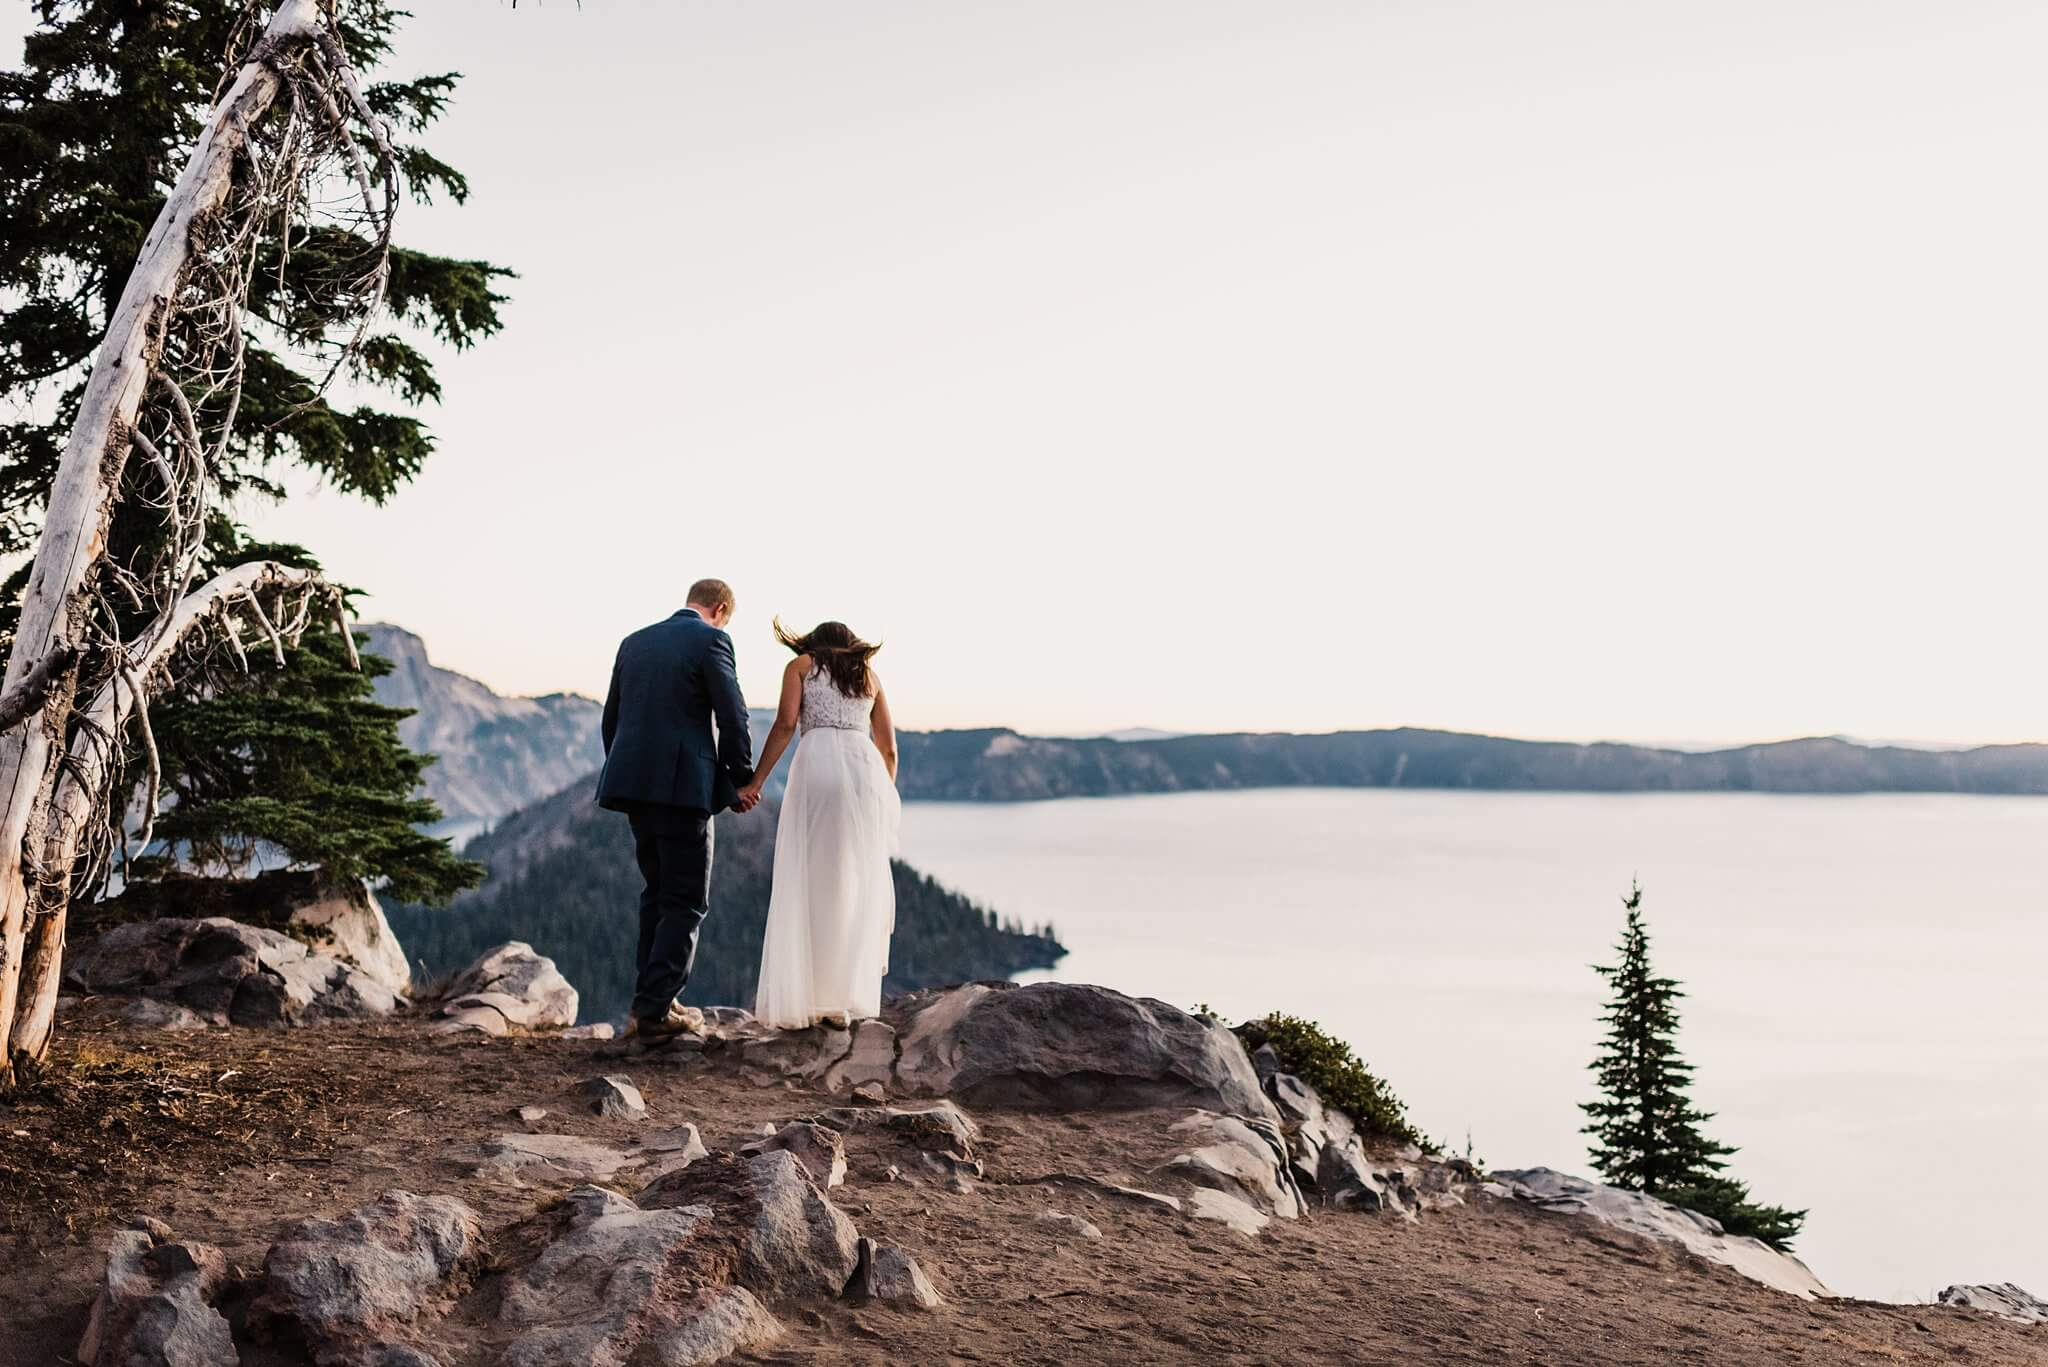 Crater Lake,S Photography,adventure elopements,adventure photographer,adventure wedding,boho wedding,cascades,elope,elopement,elopement photographer,eloping,indie wedding,intimate wedding,national park wedding,oregon,pacific northwest,small wedding,sunrise,